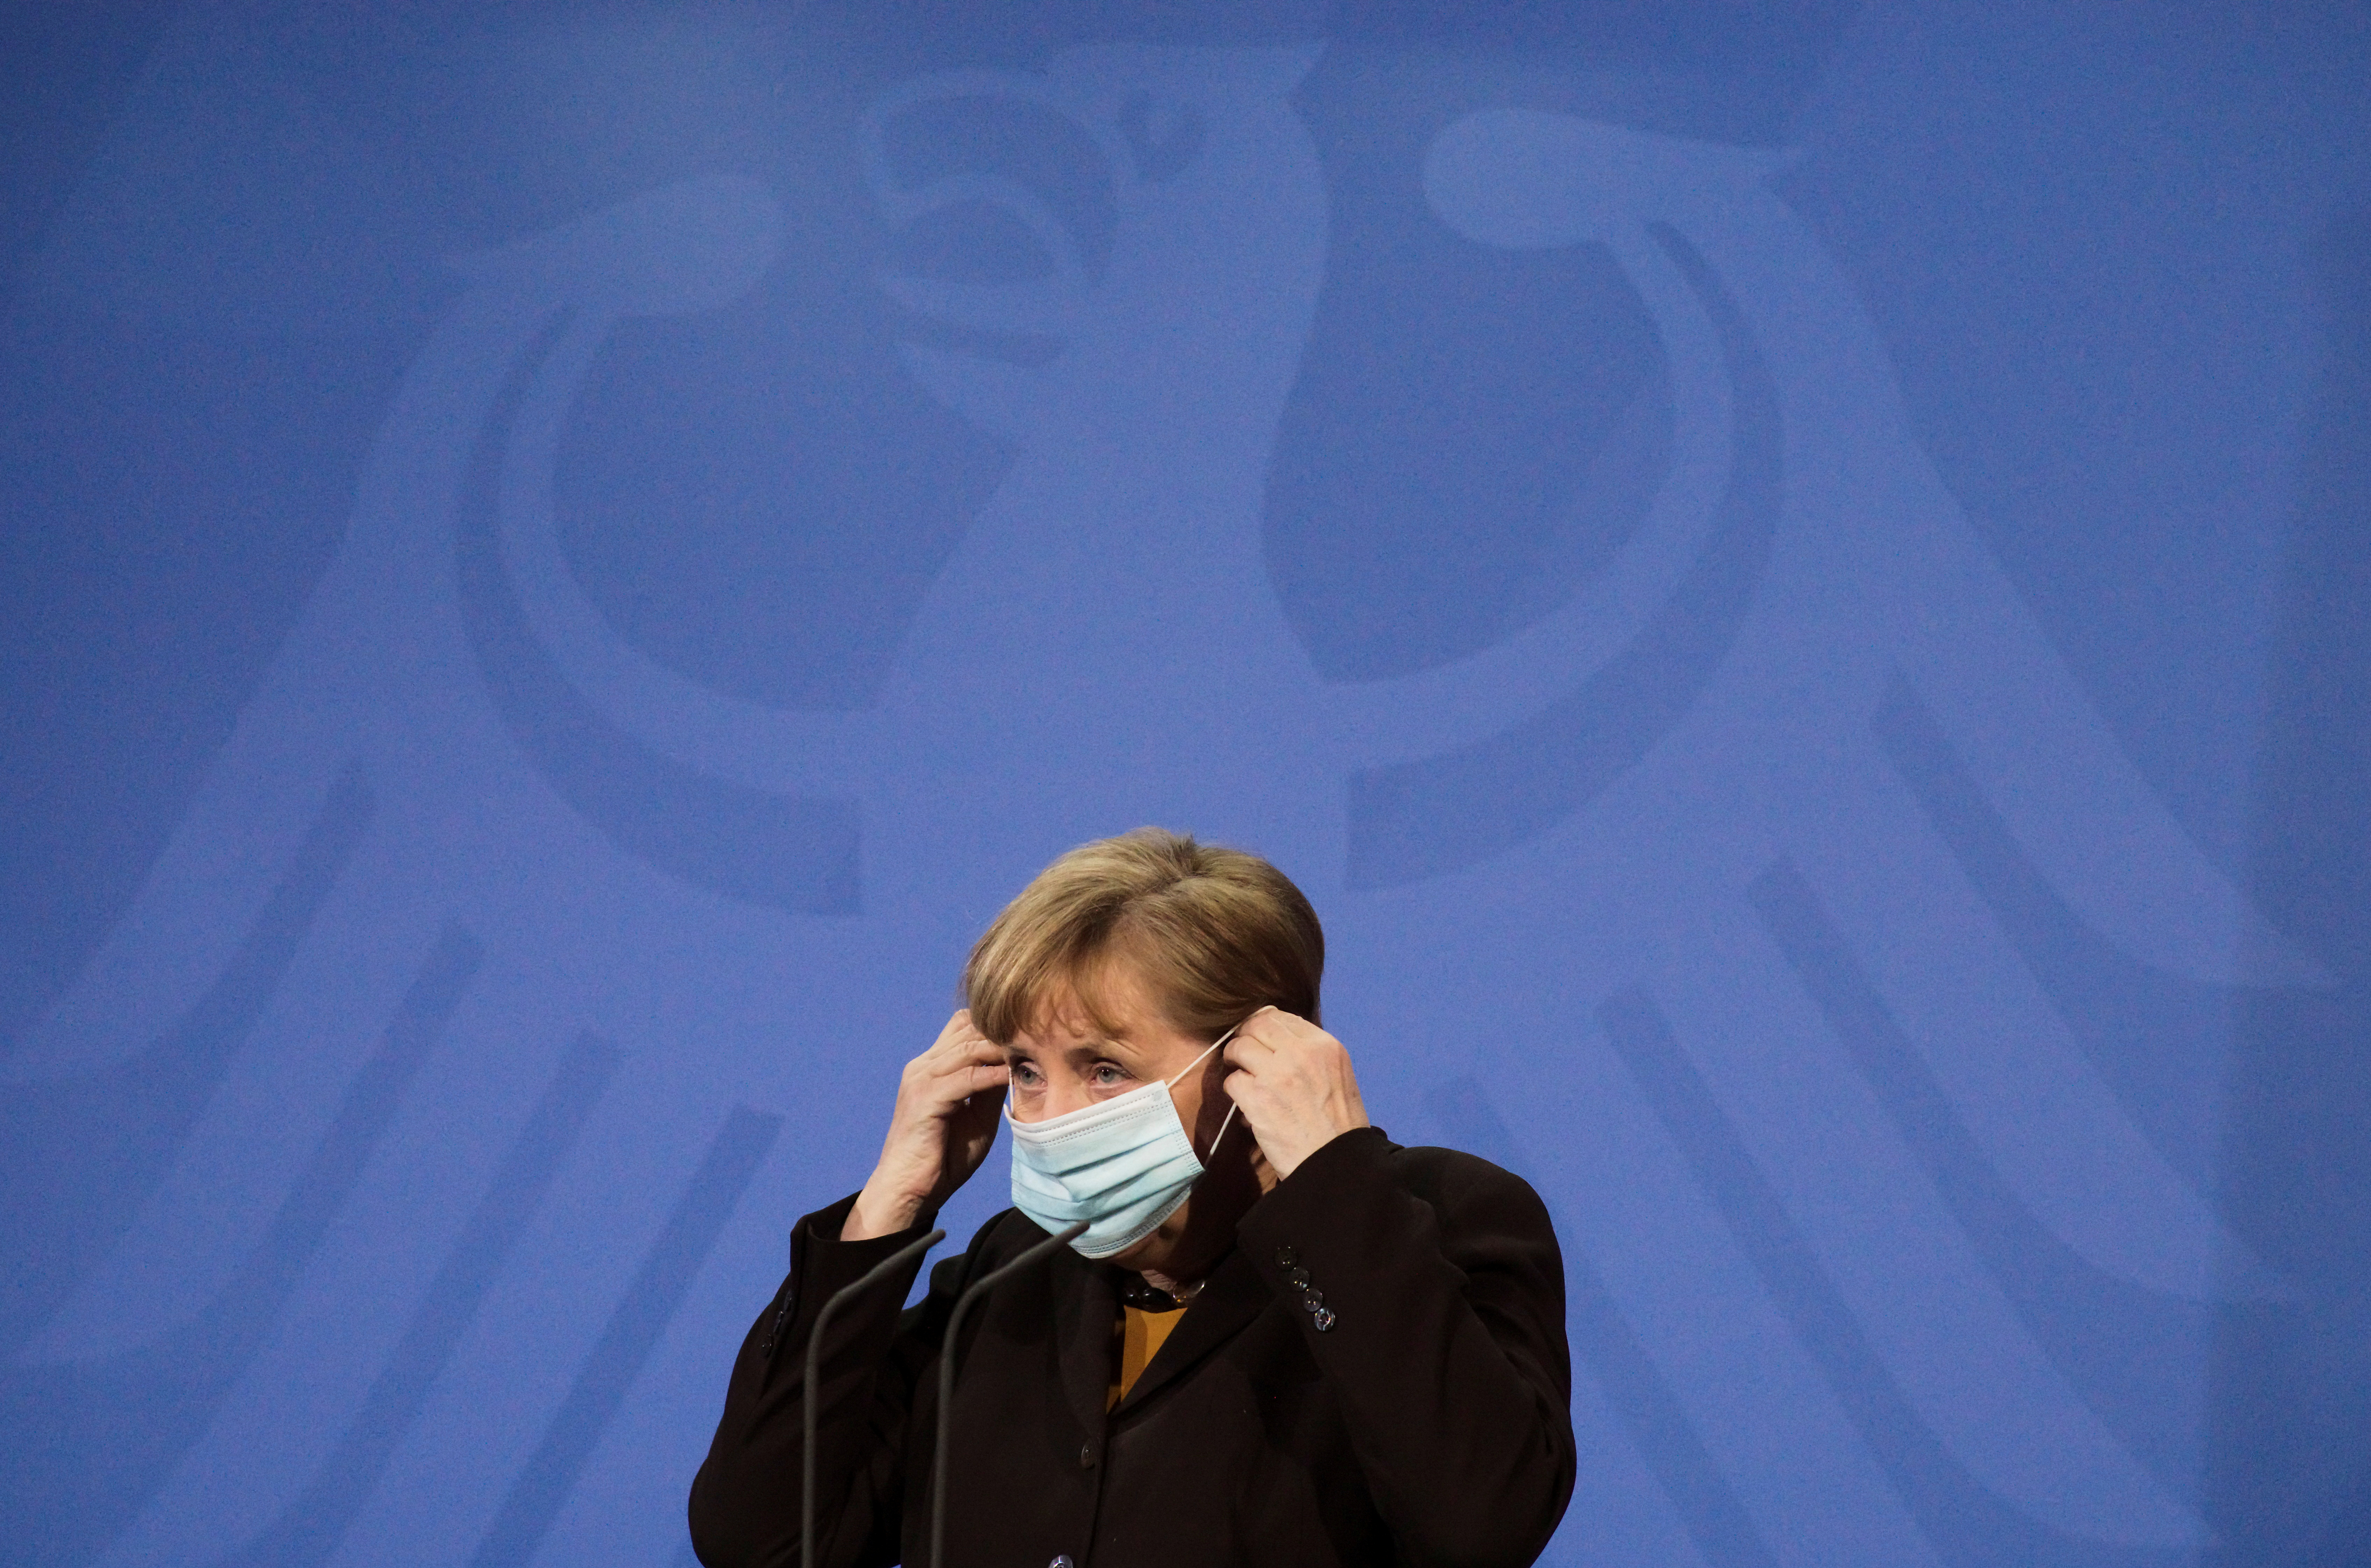 German Chancellor Angela Merkel puts on her face mask as she briefed the media after a virtual meeting with federal state governors at the chancellery in Berlin, Germany, March 30, 2021. Markus Schreiber/Pool via REUTERS